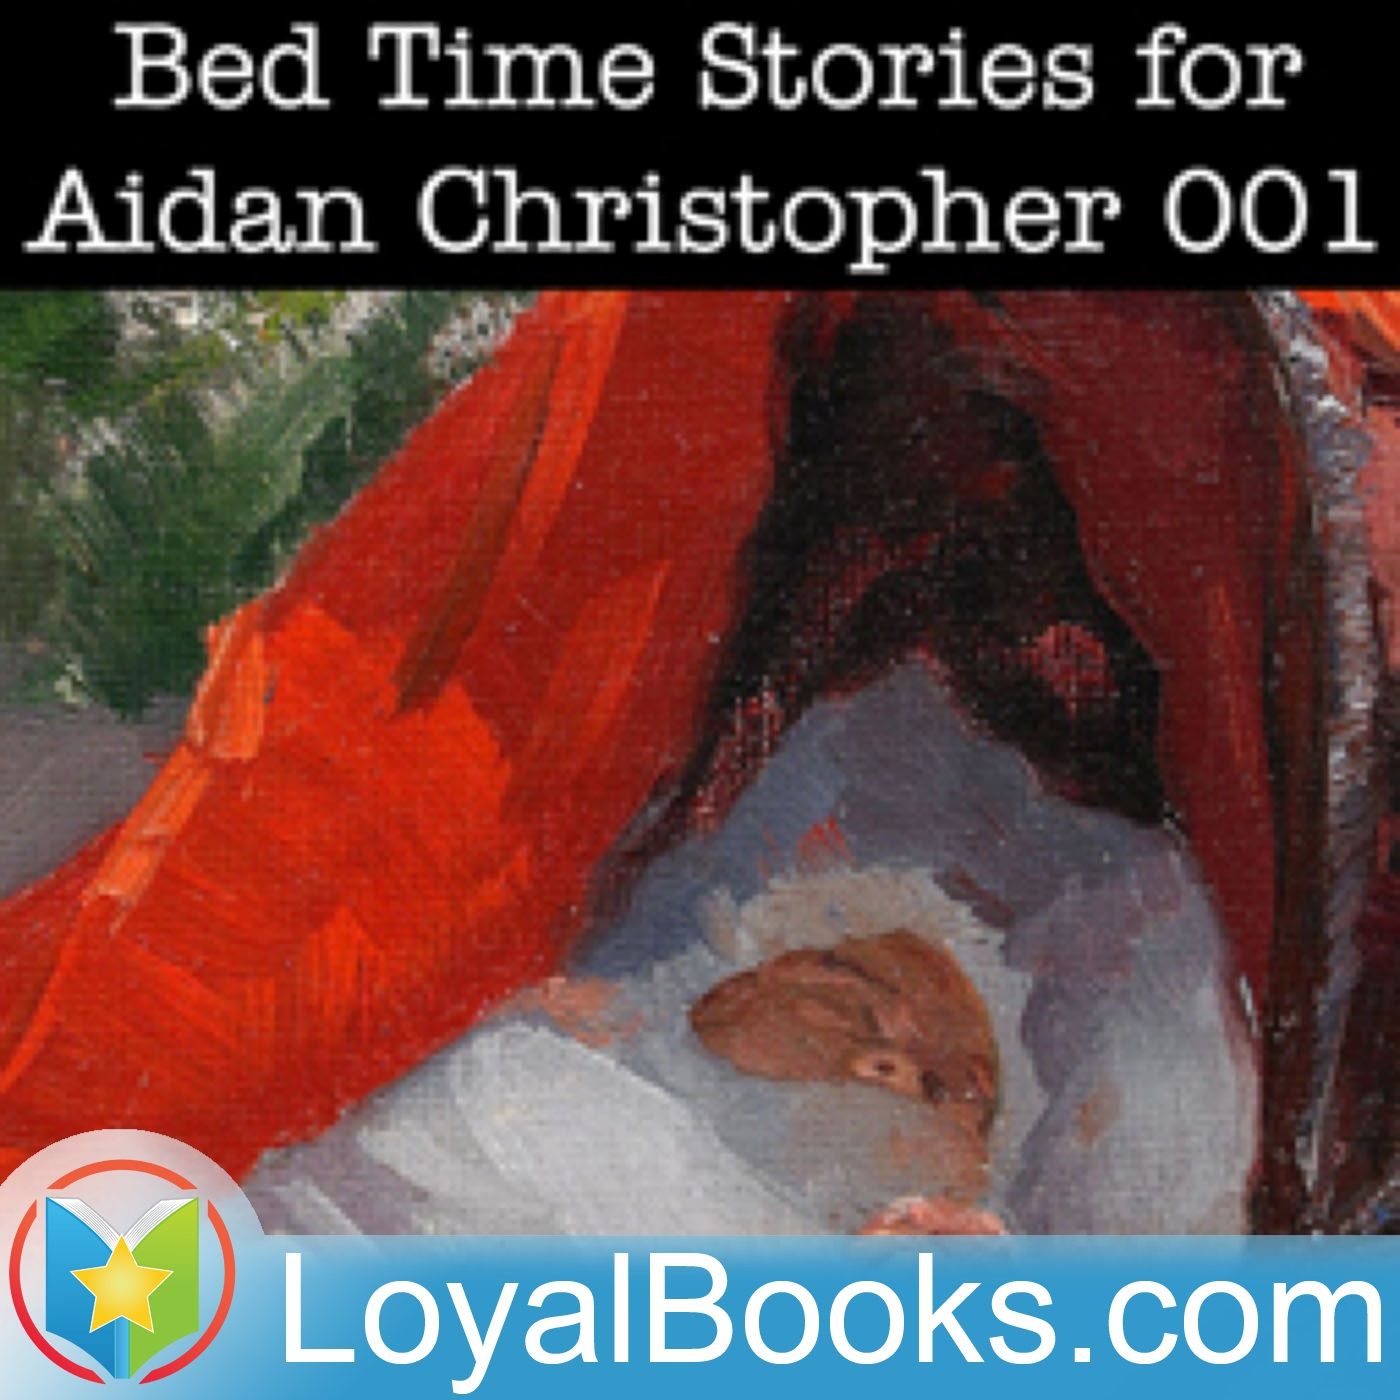 <![CDATA[Bed Time Stories for Aidan Christopher by Unknown]]>